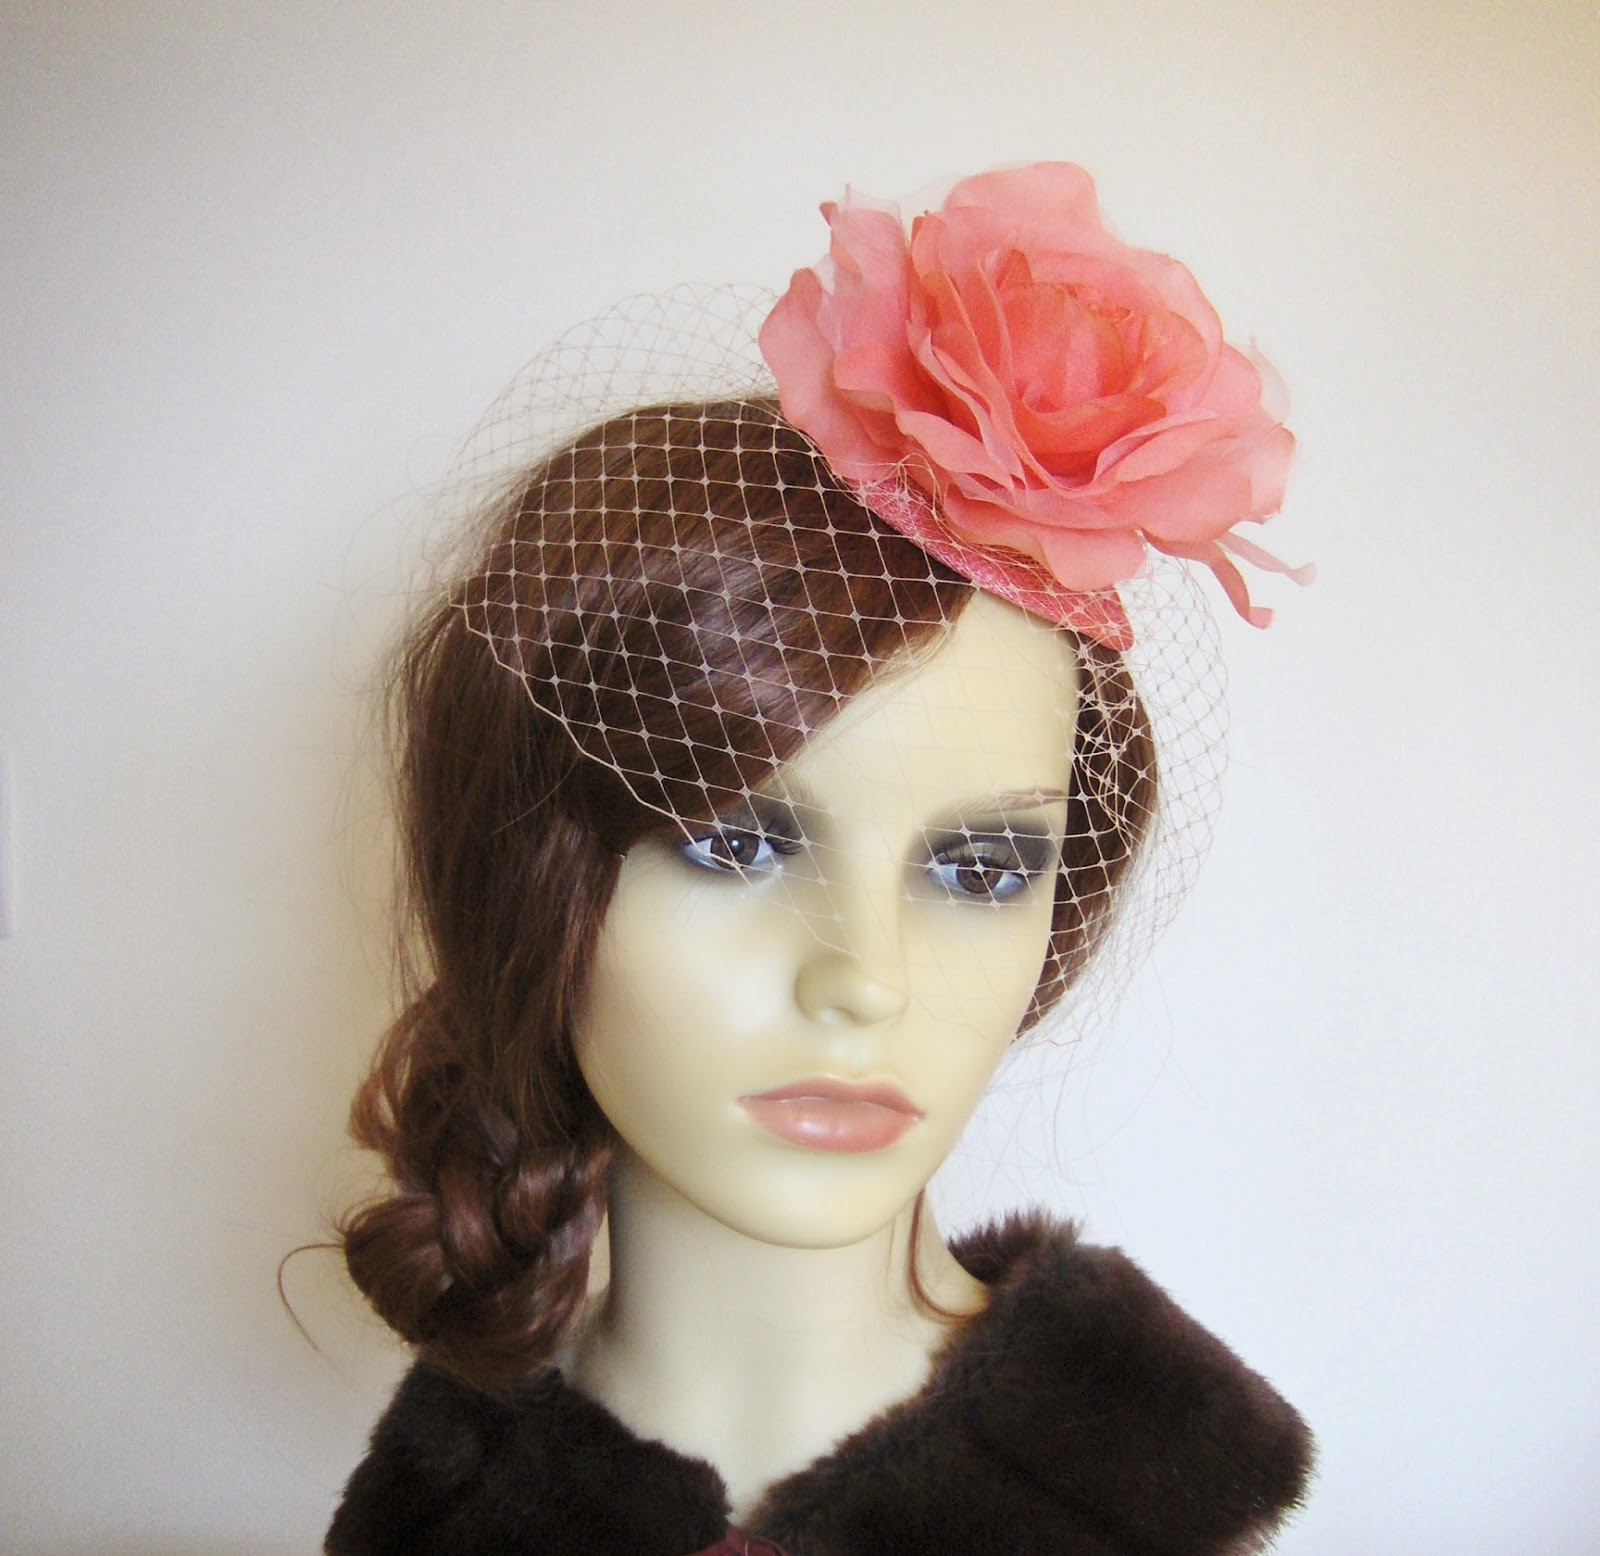 http://folksy.com/items/5669911-Flamingo-peach-rose-fascinator-